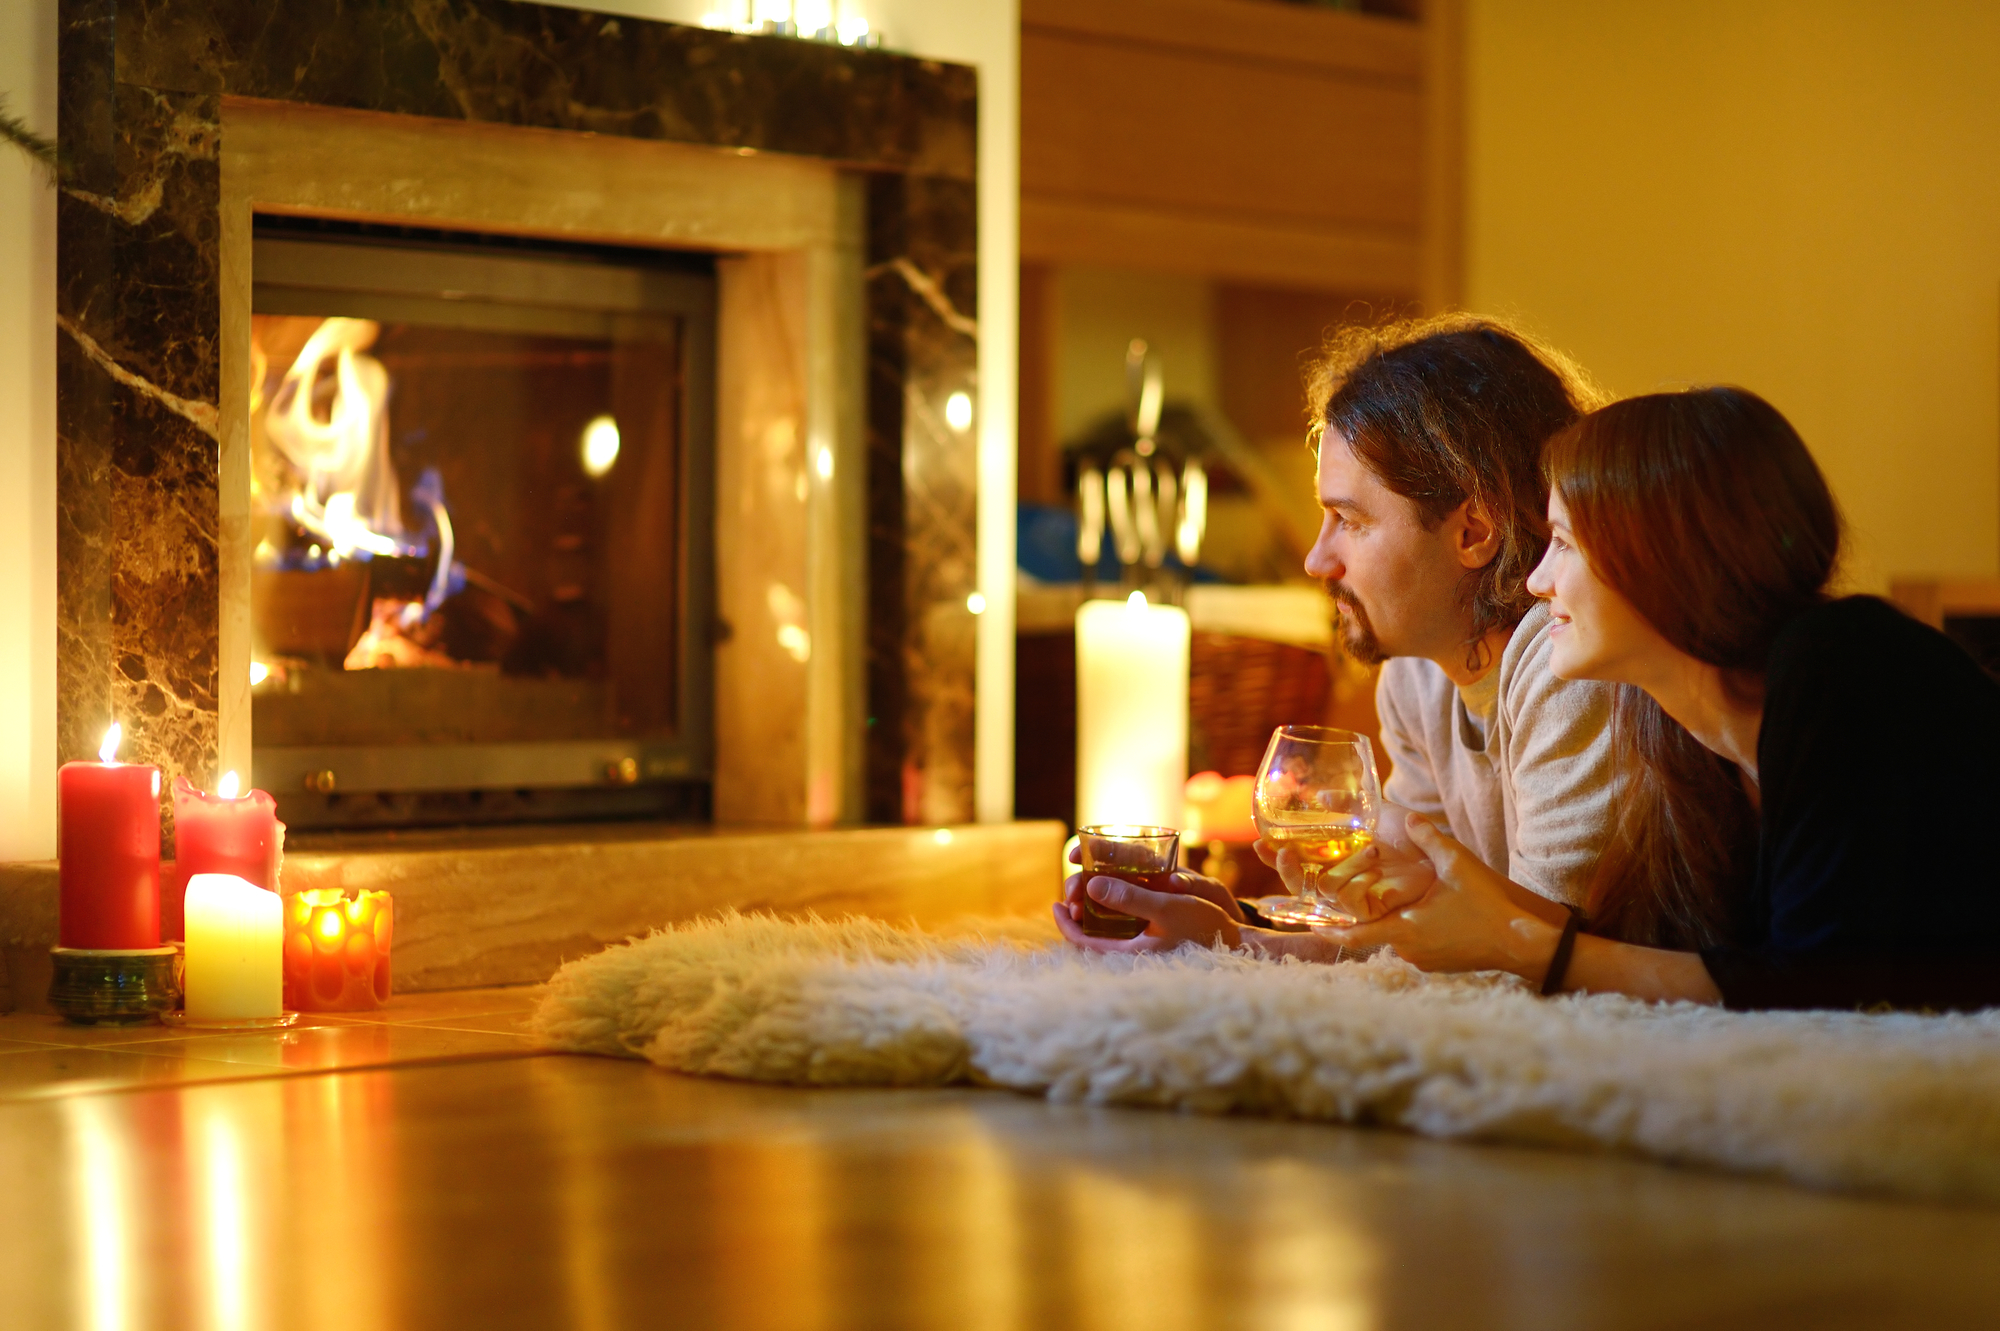 Happy couple having drinks by a fireplace in a cozy dark living room on Christmas eve